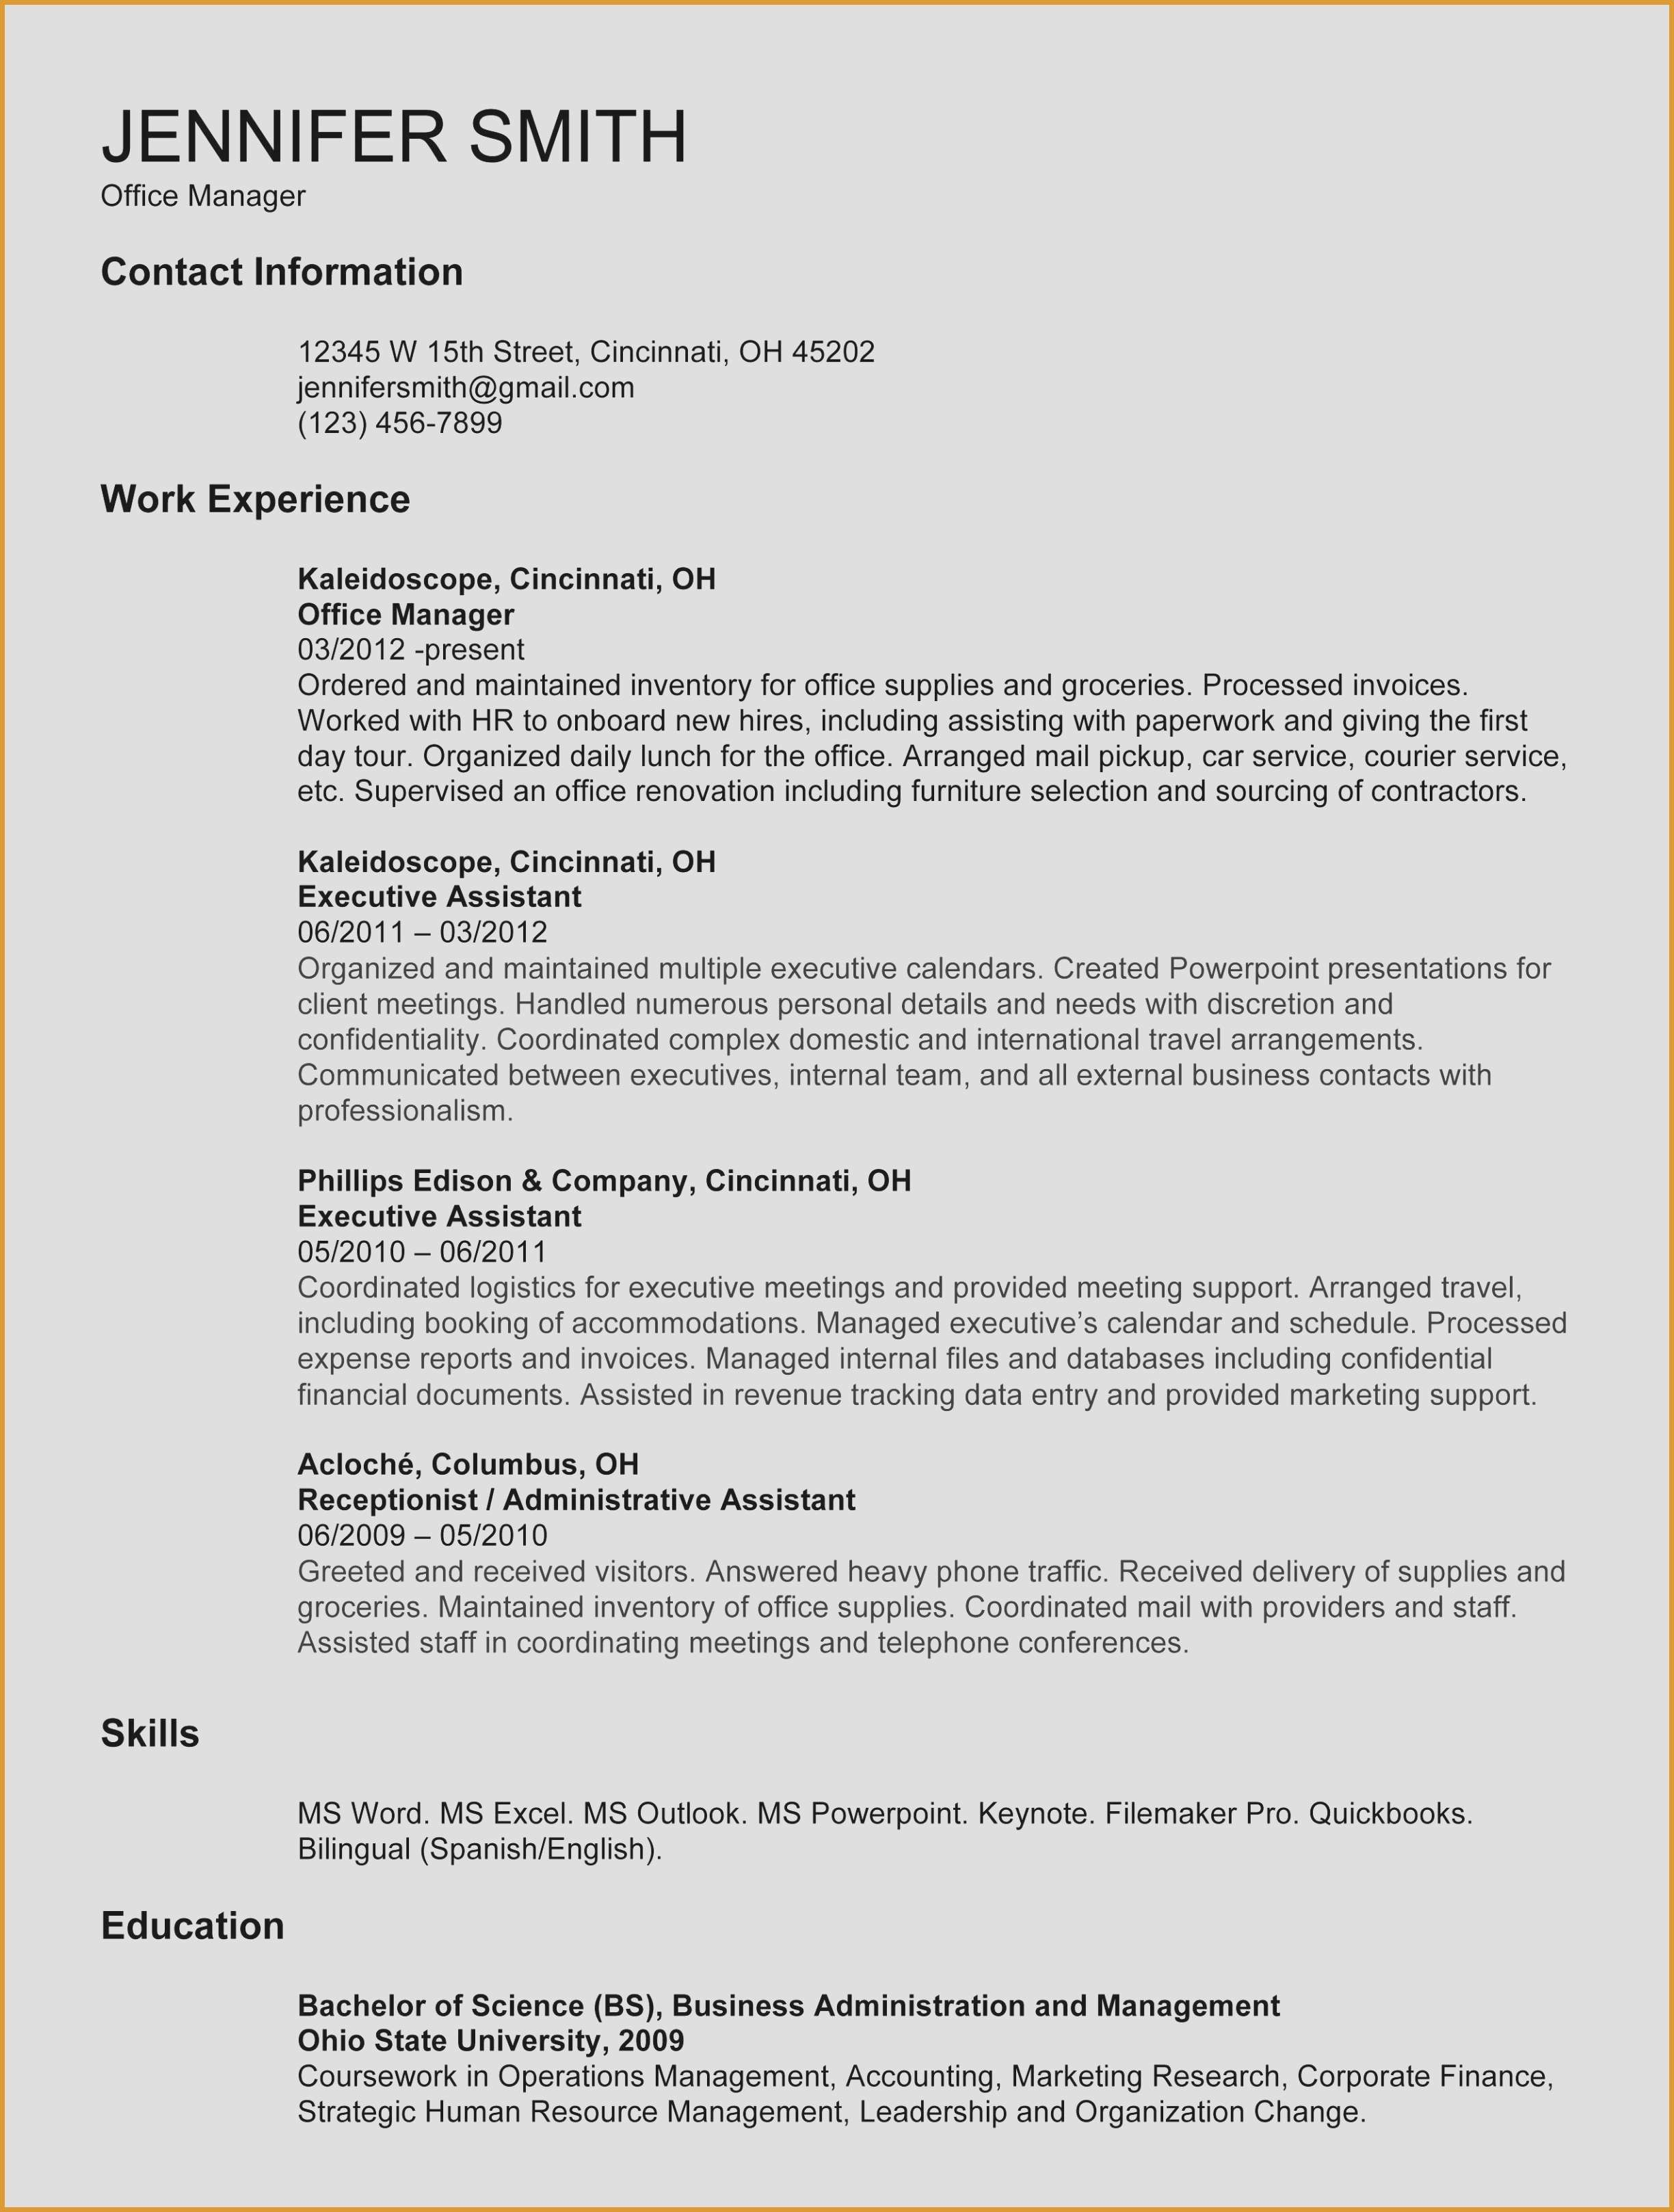 Accounting Resume Template Word - Accounting Resume Template Elegant Resume 52 New Cv Templates Full